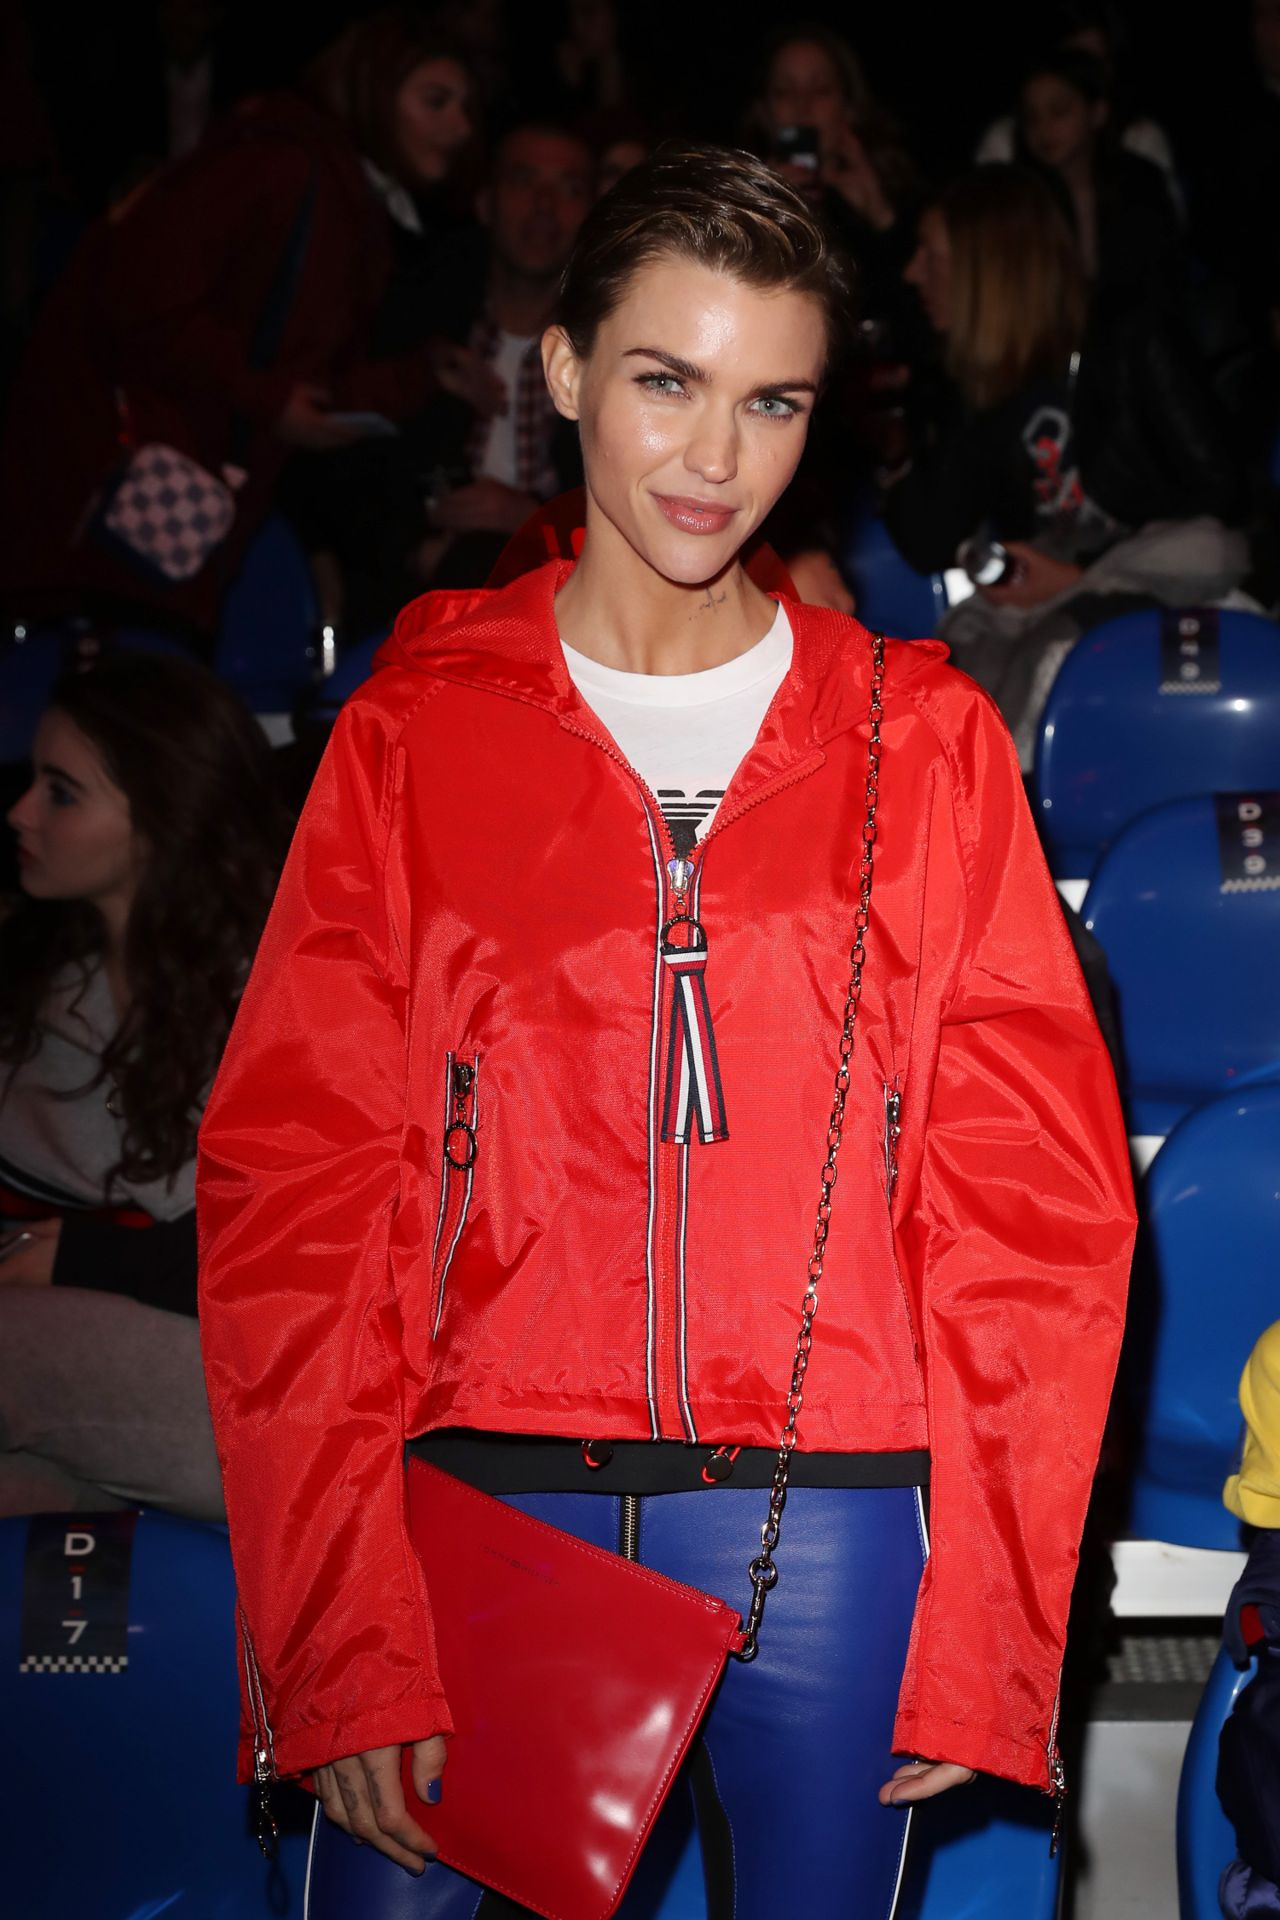 Ruby rose tommy hilfiger show sw18 in milan - Tommy hilfiger show ...